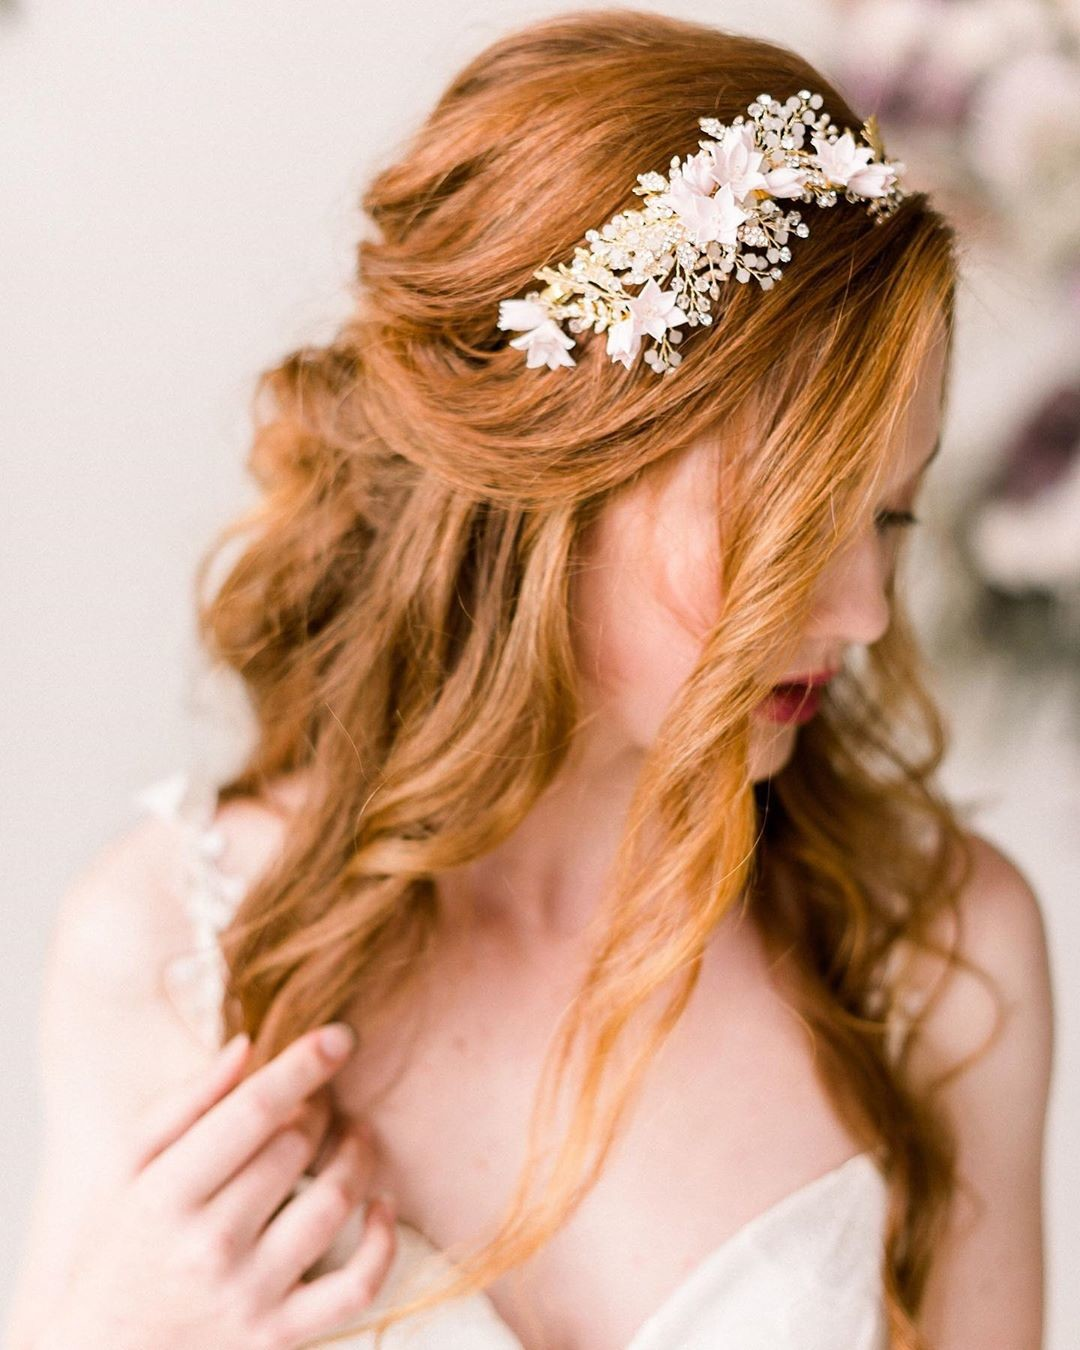 🌸Our gorgeous cherry blossom headpiece (style 4011) features hand made clay flowers, hand wired crystals, rhinestones, beads and